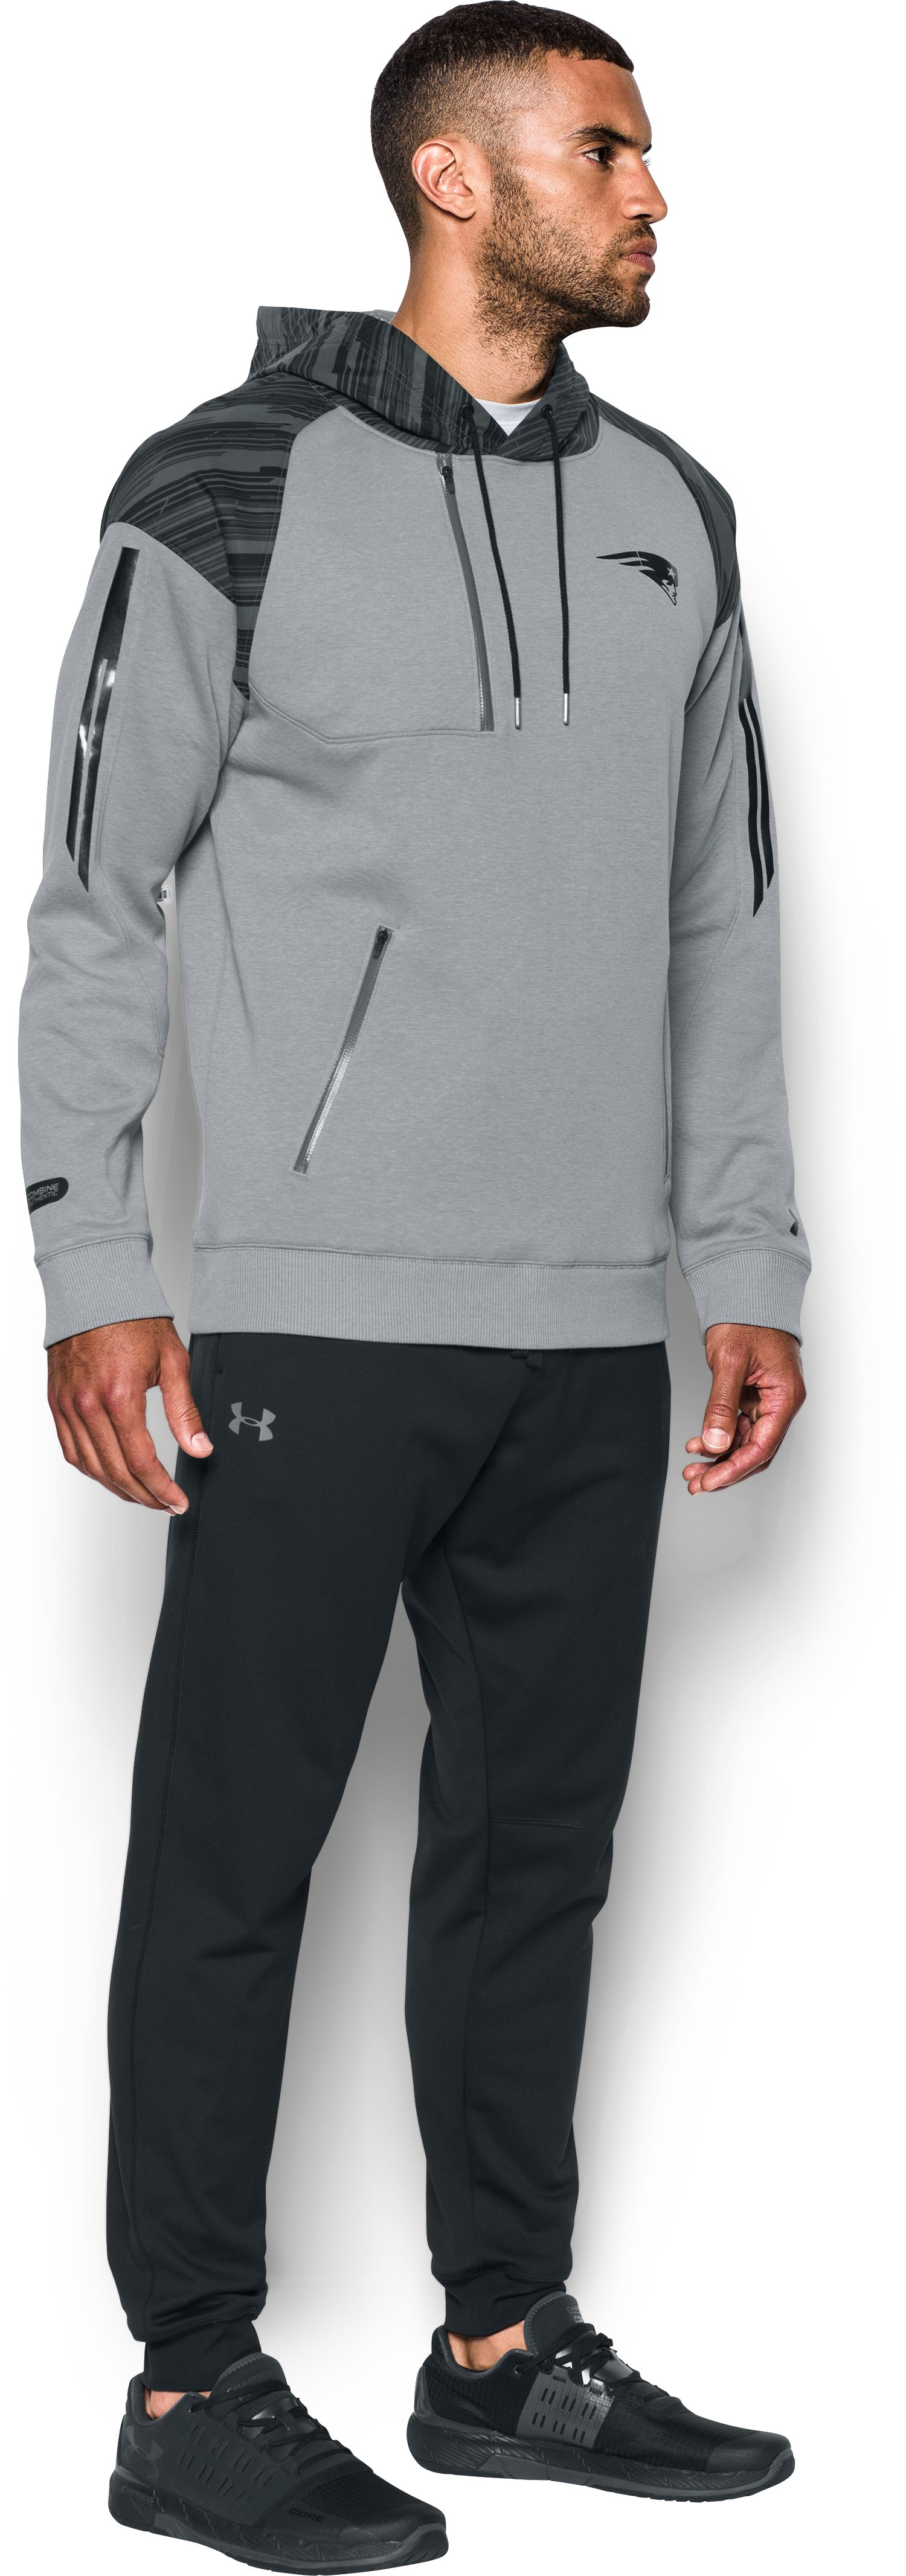 Men's NFL Combine Authentic UA Pinnacle Hoodie, NFL_NEW ENGLAND PATRIOTS_PINANCLE GRAY,